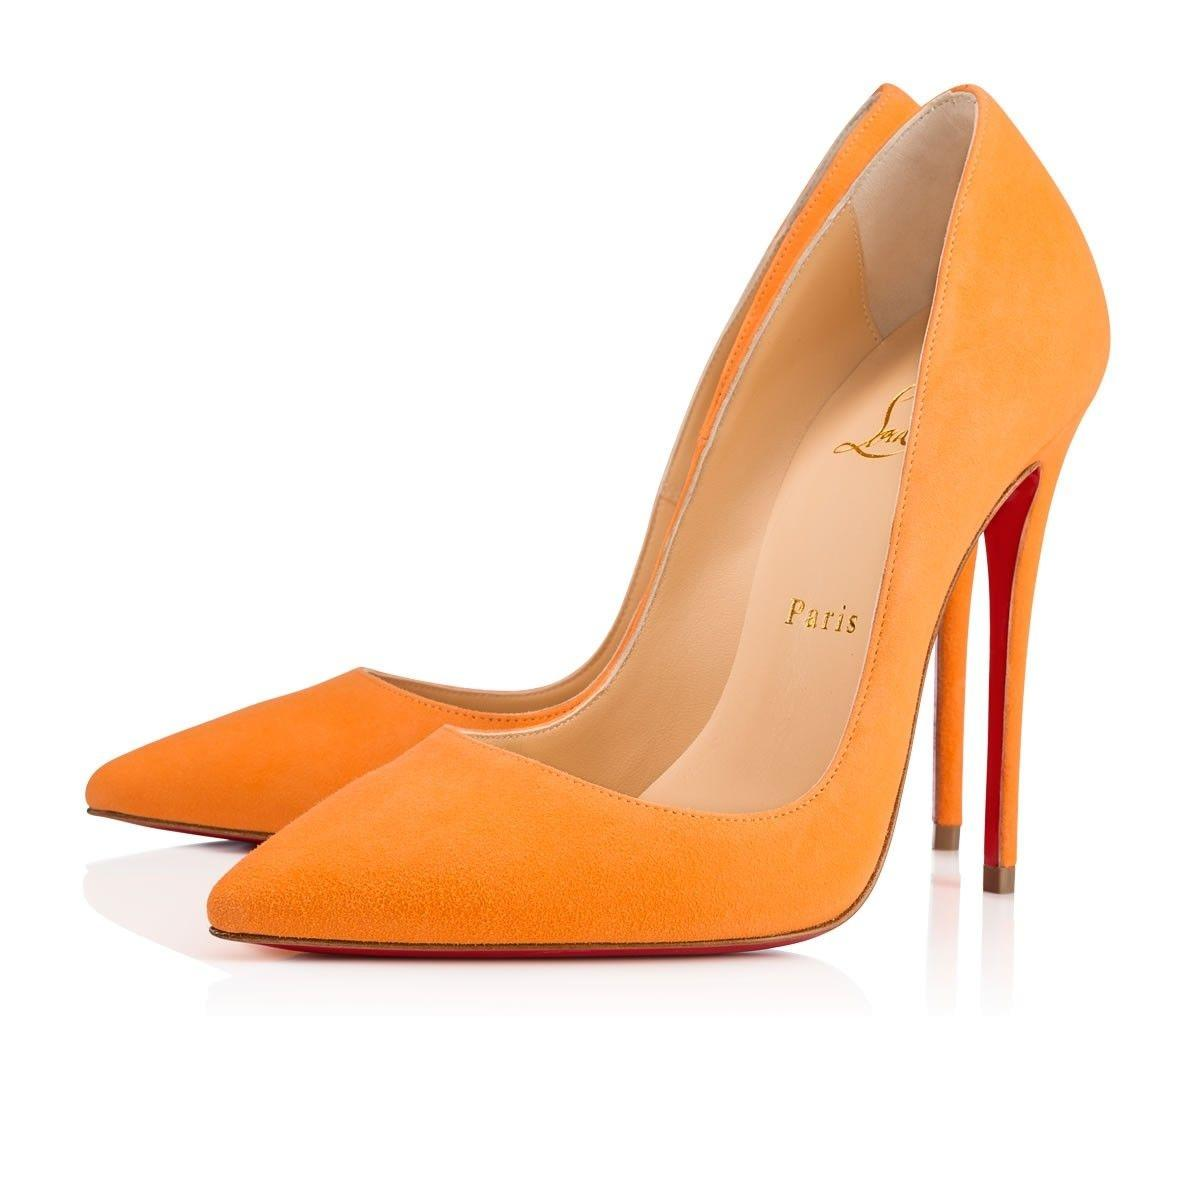 louboutin orange